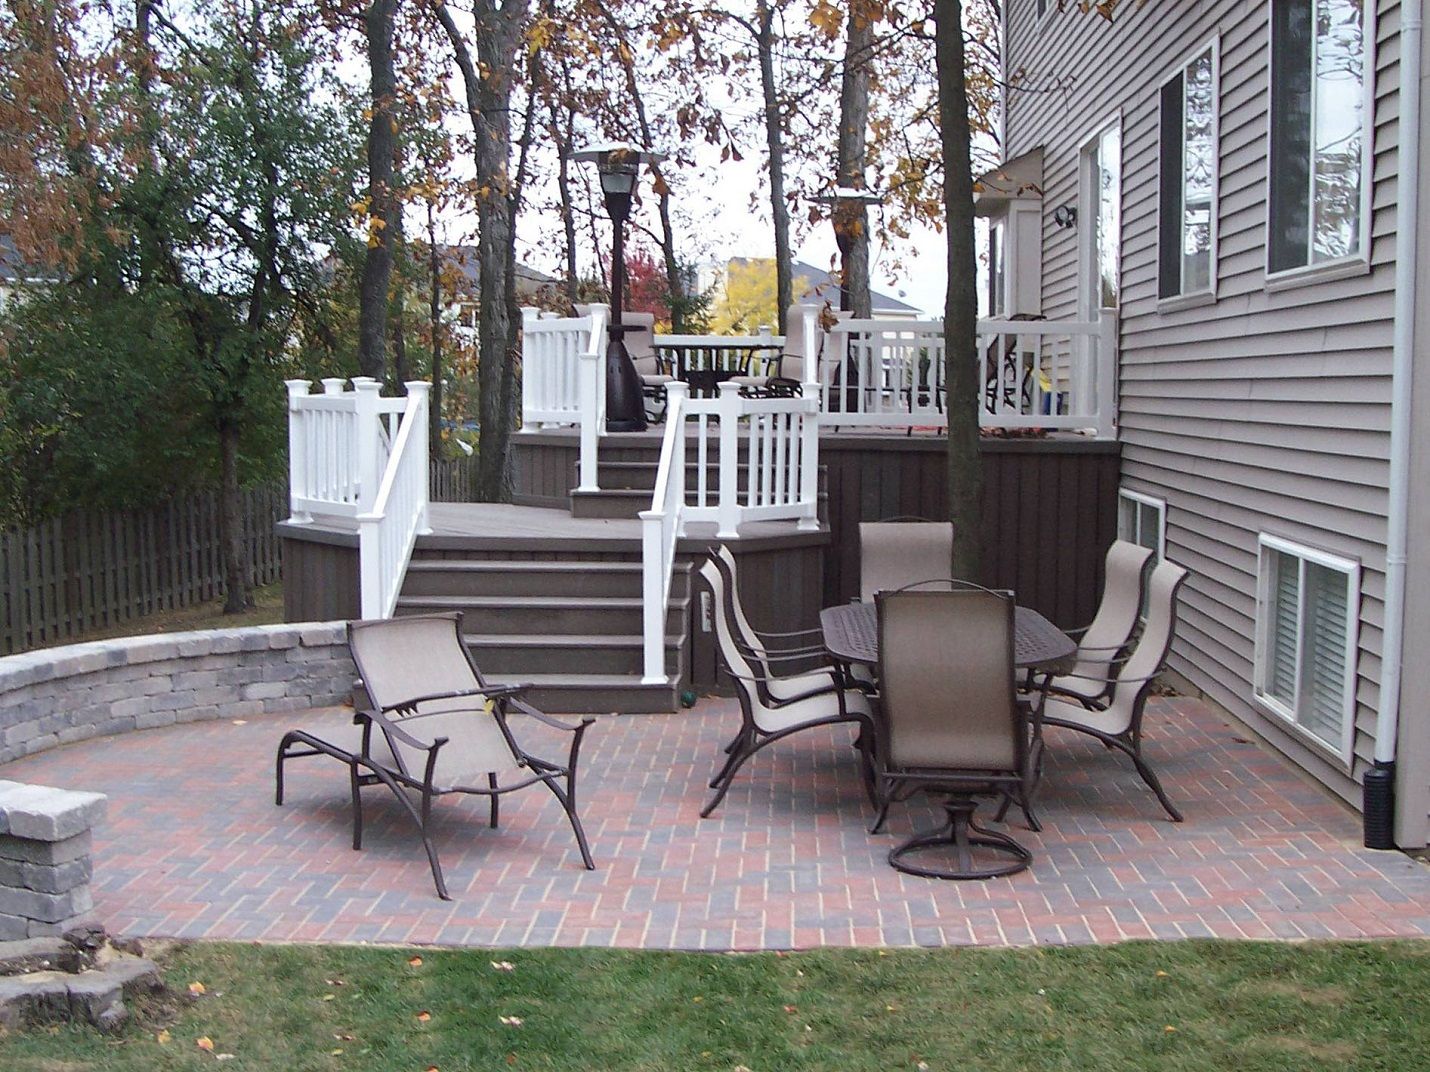 Why-not-incorporate-a-new-patio-along-with-your-plans-for-a-new-deck-?